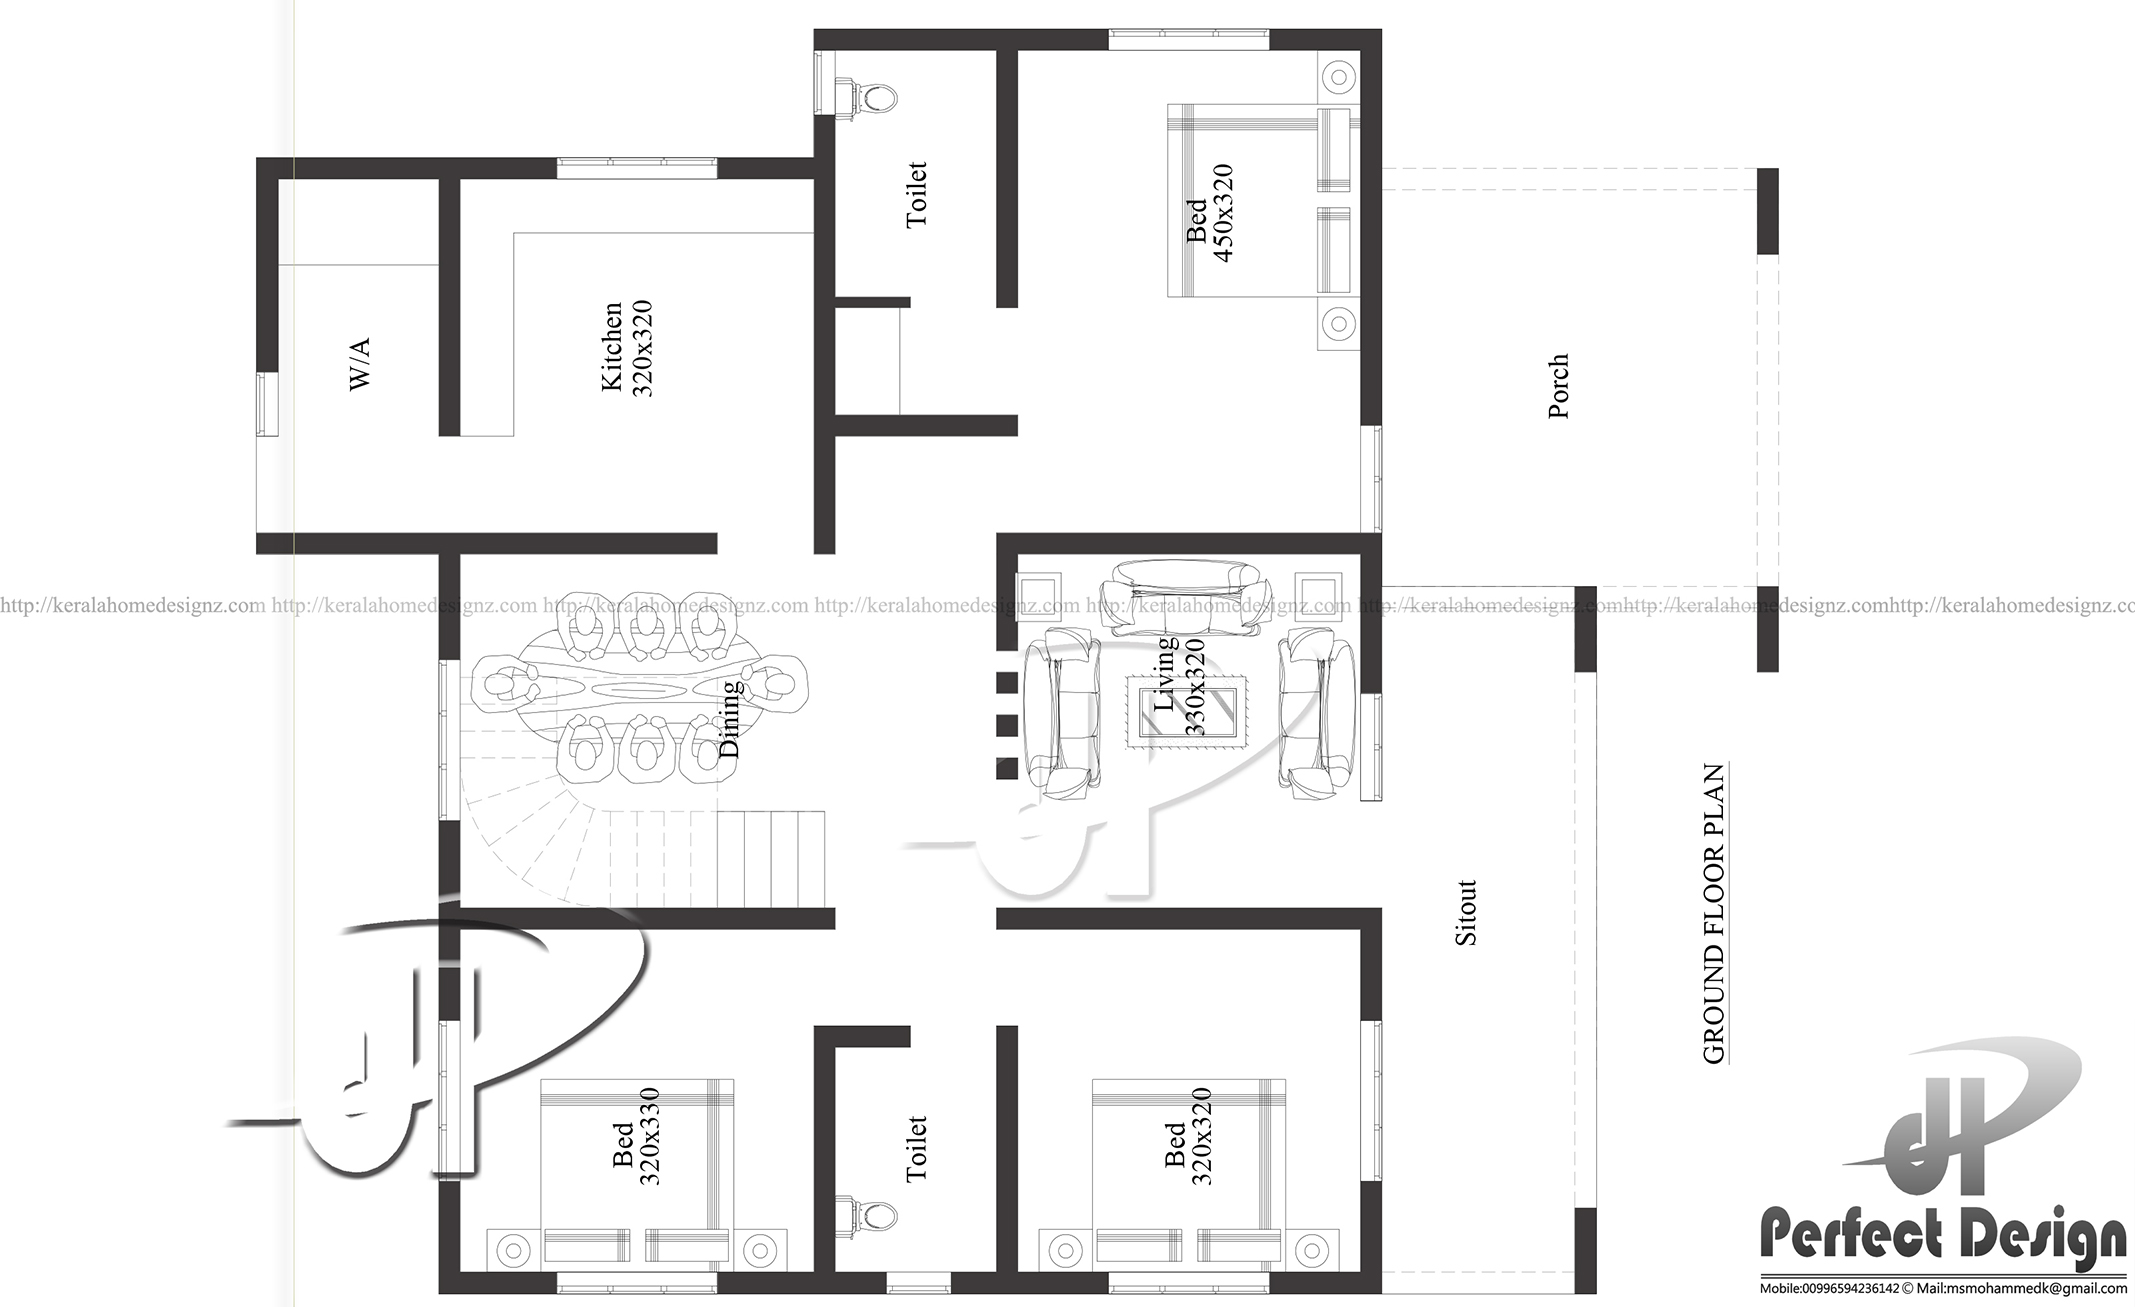 100 Sq Meter To Sq Ft 2310 Sq Ft Double Floor Home